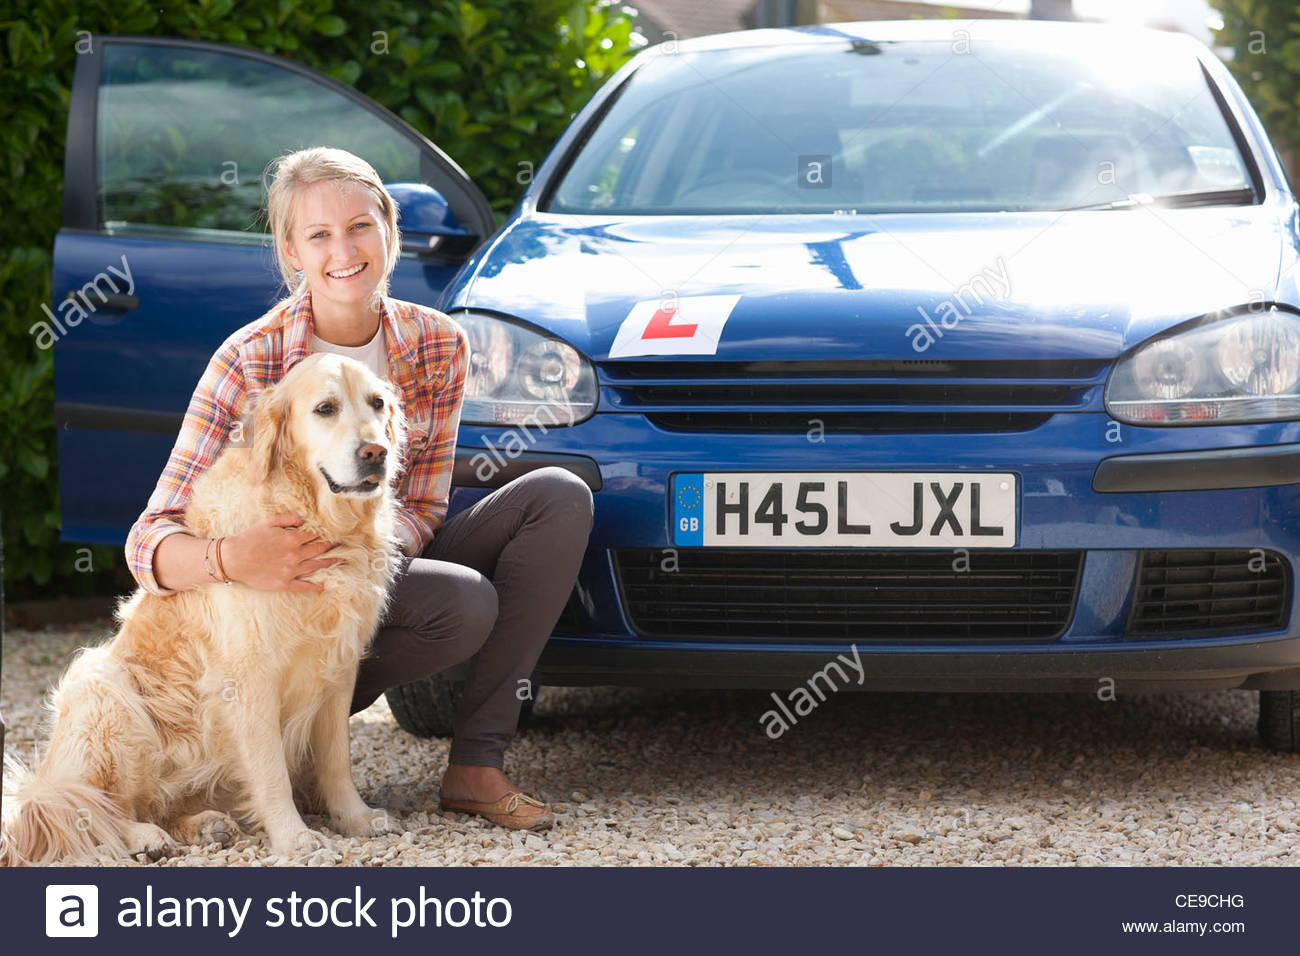 Portrait of smiling young woman with dog in front of car with learner's permit - Stock Image